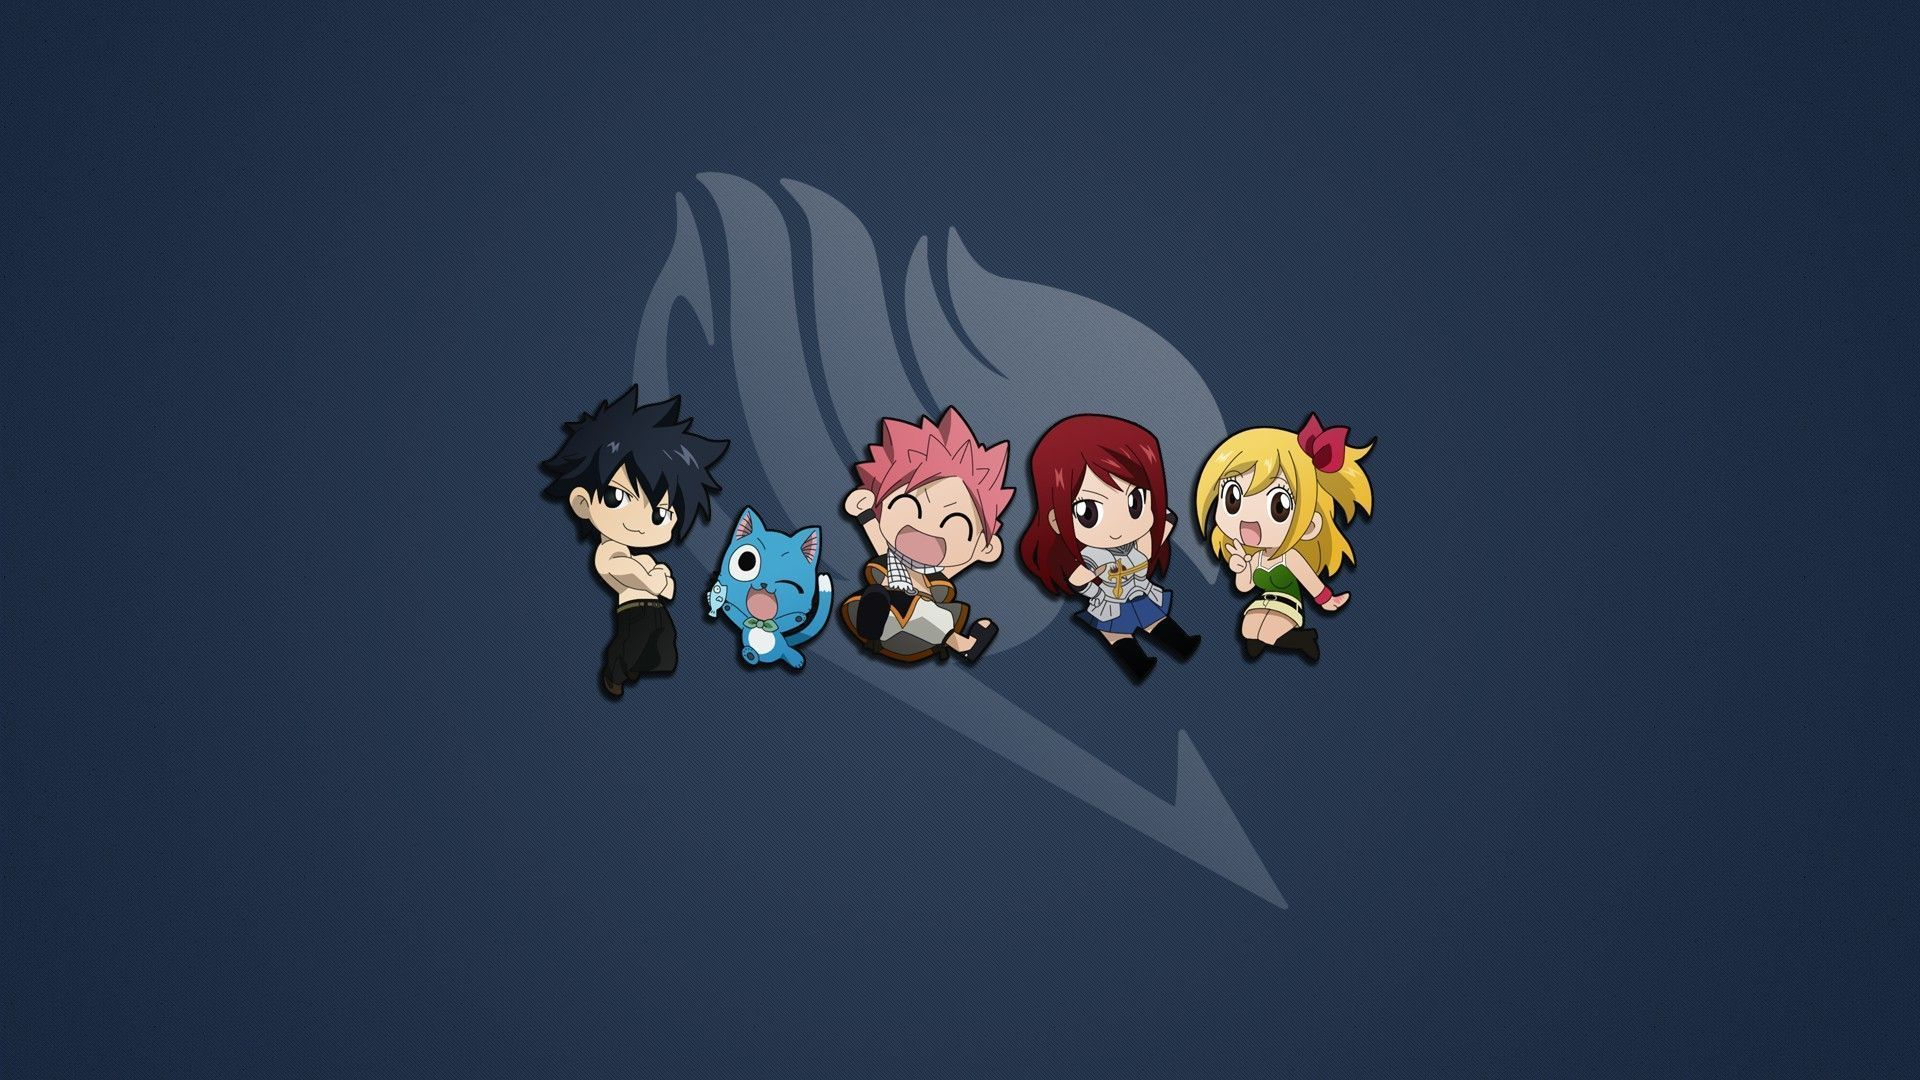 fairy tail background - Fairy Tail Store